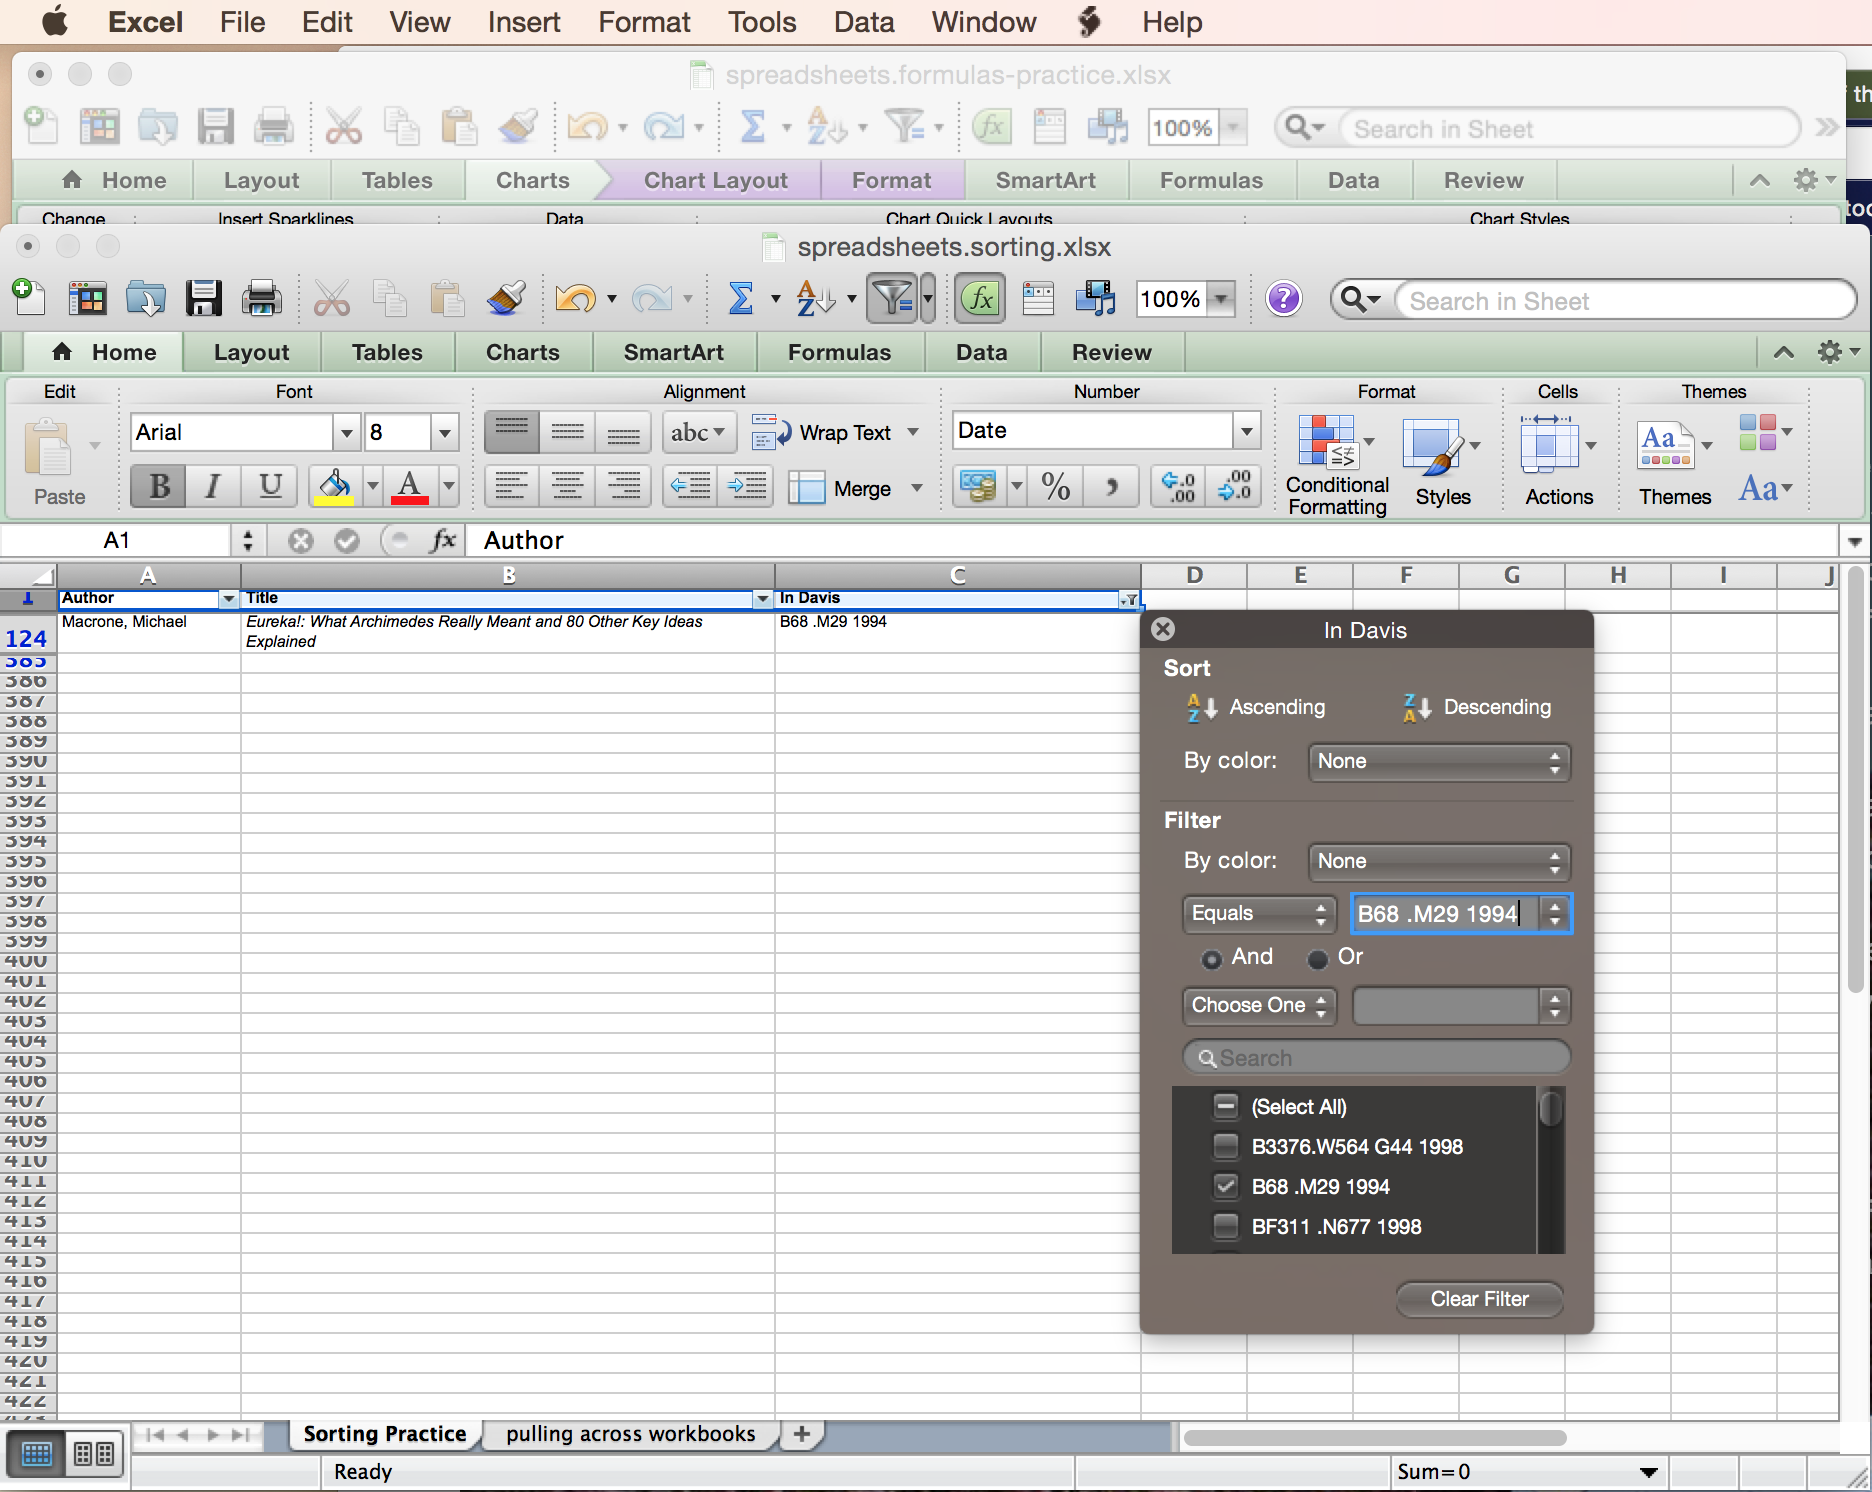 Inls161 001 fall 2015 information tools spreadsheets as databases